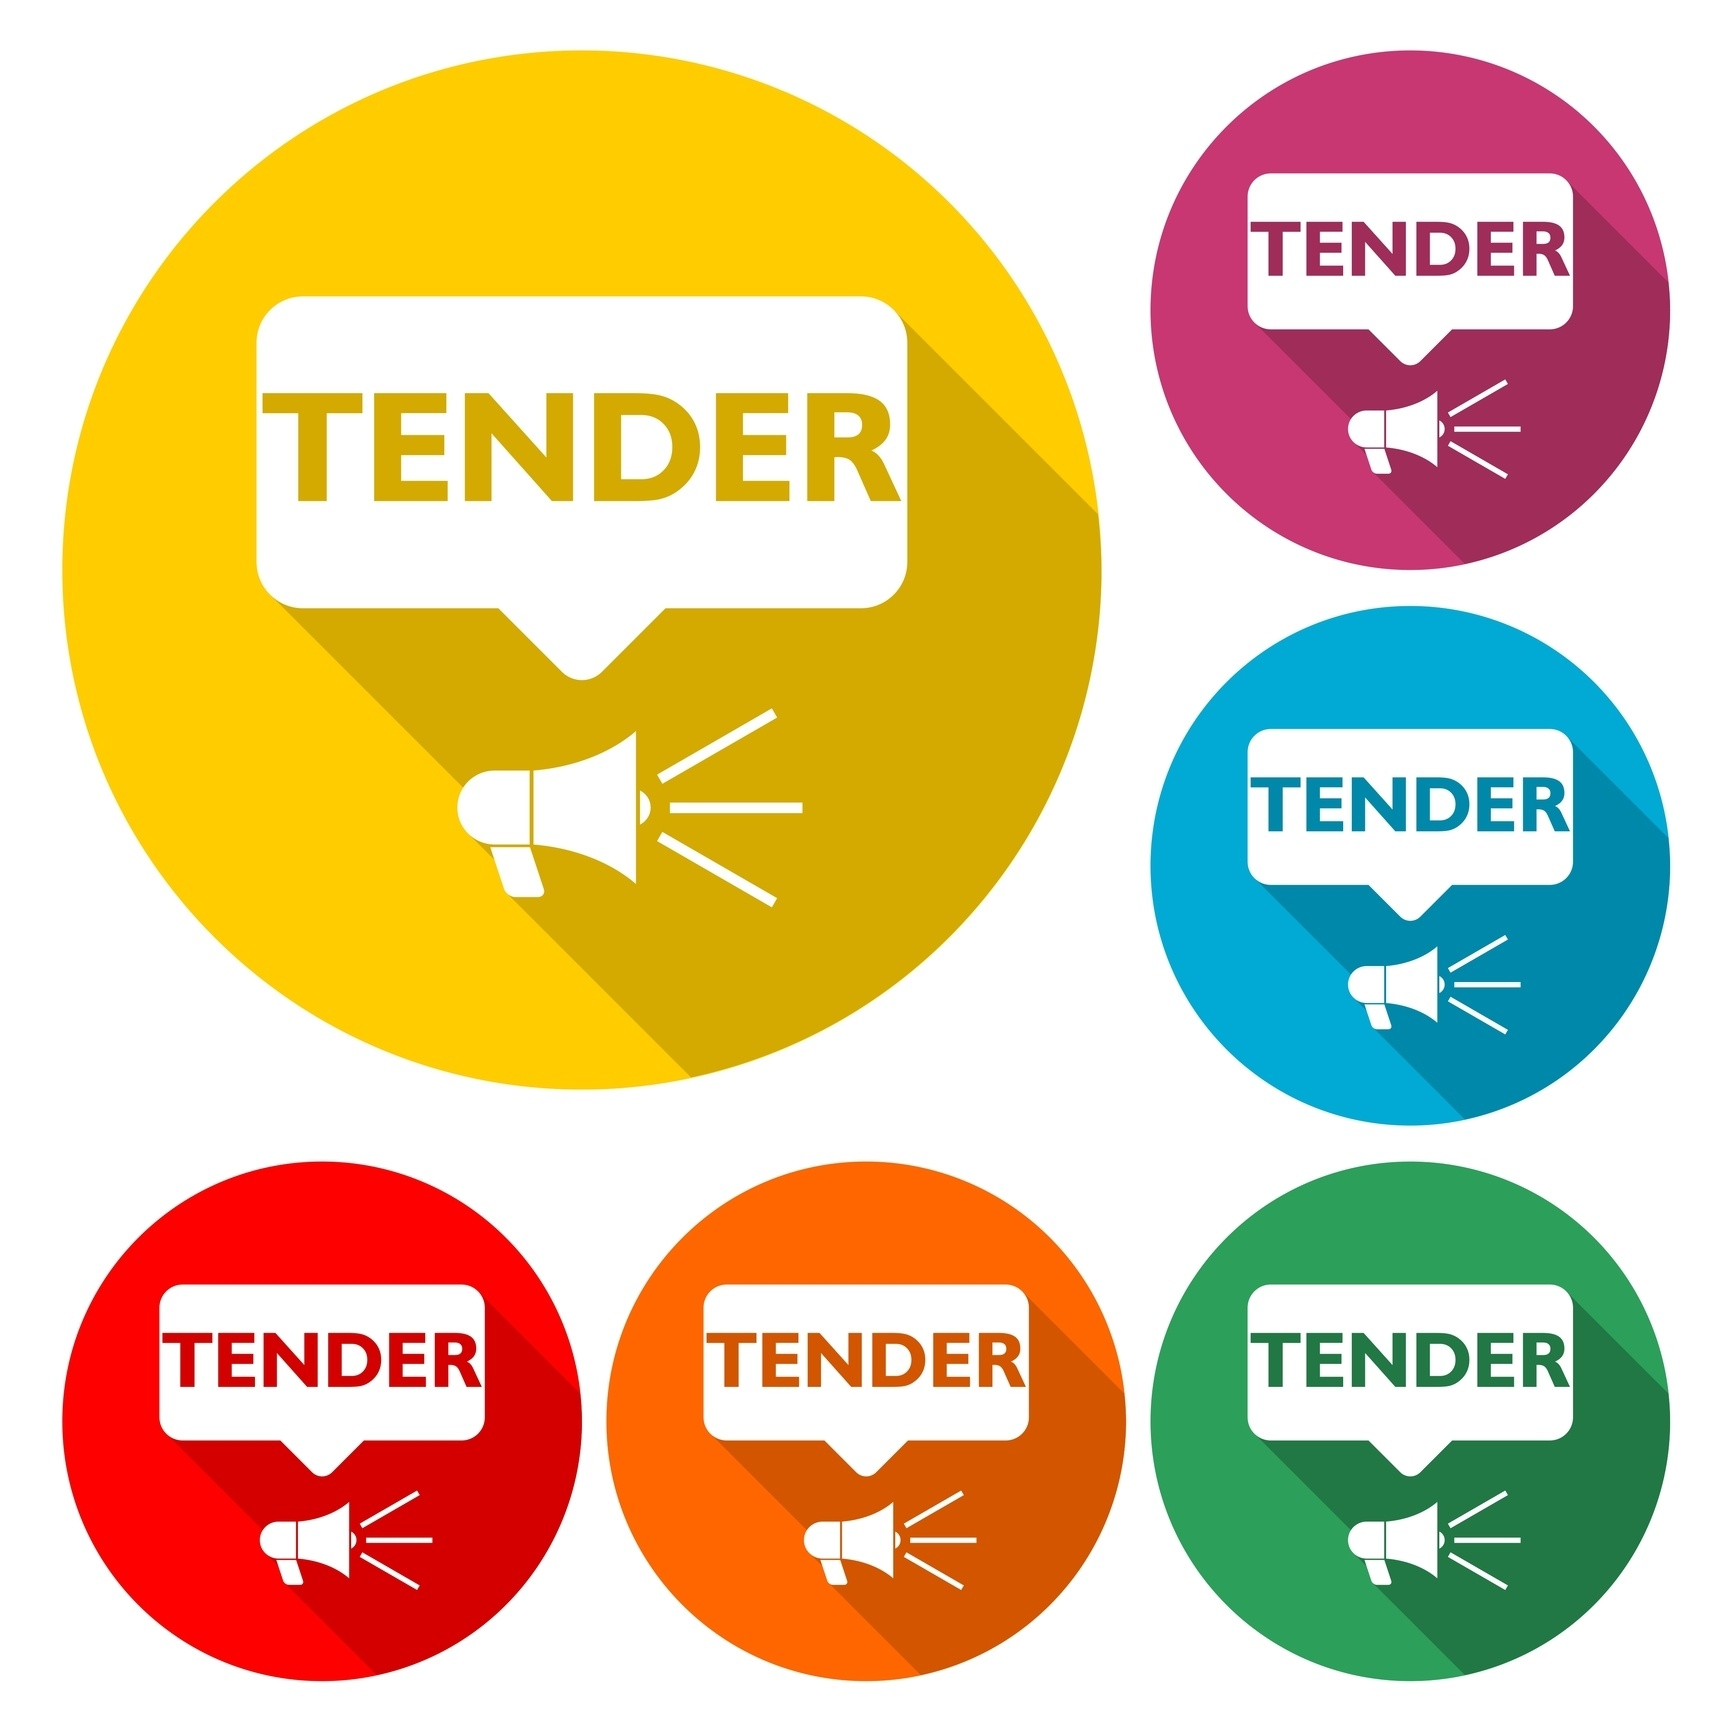 Tender training course